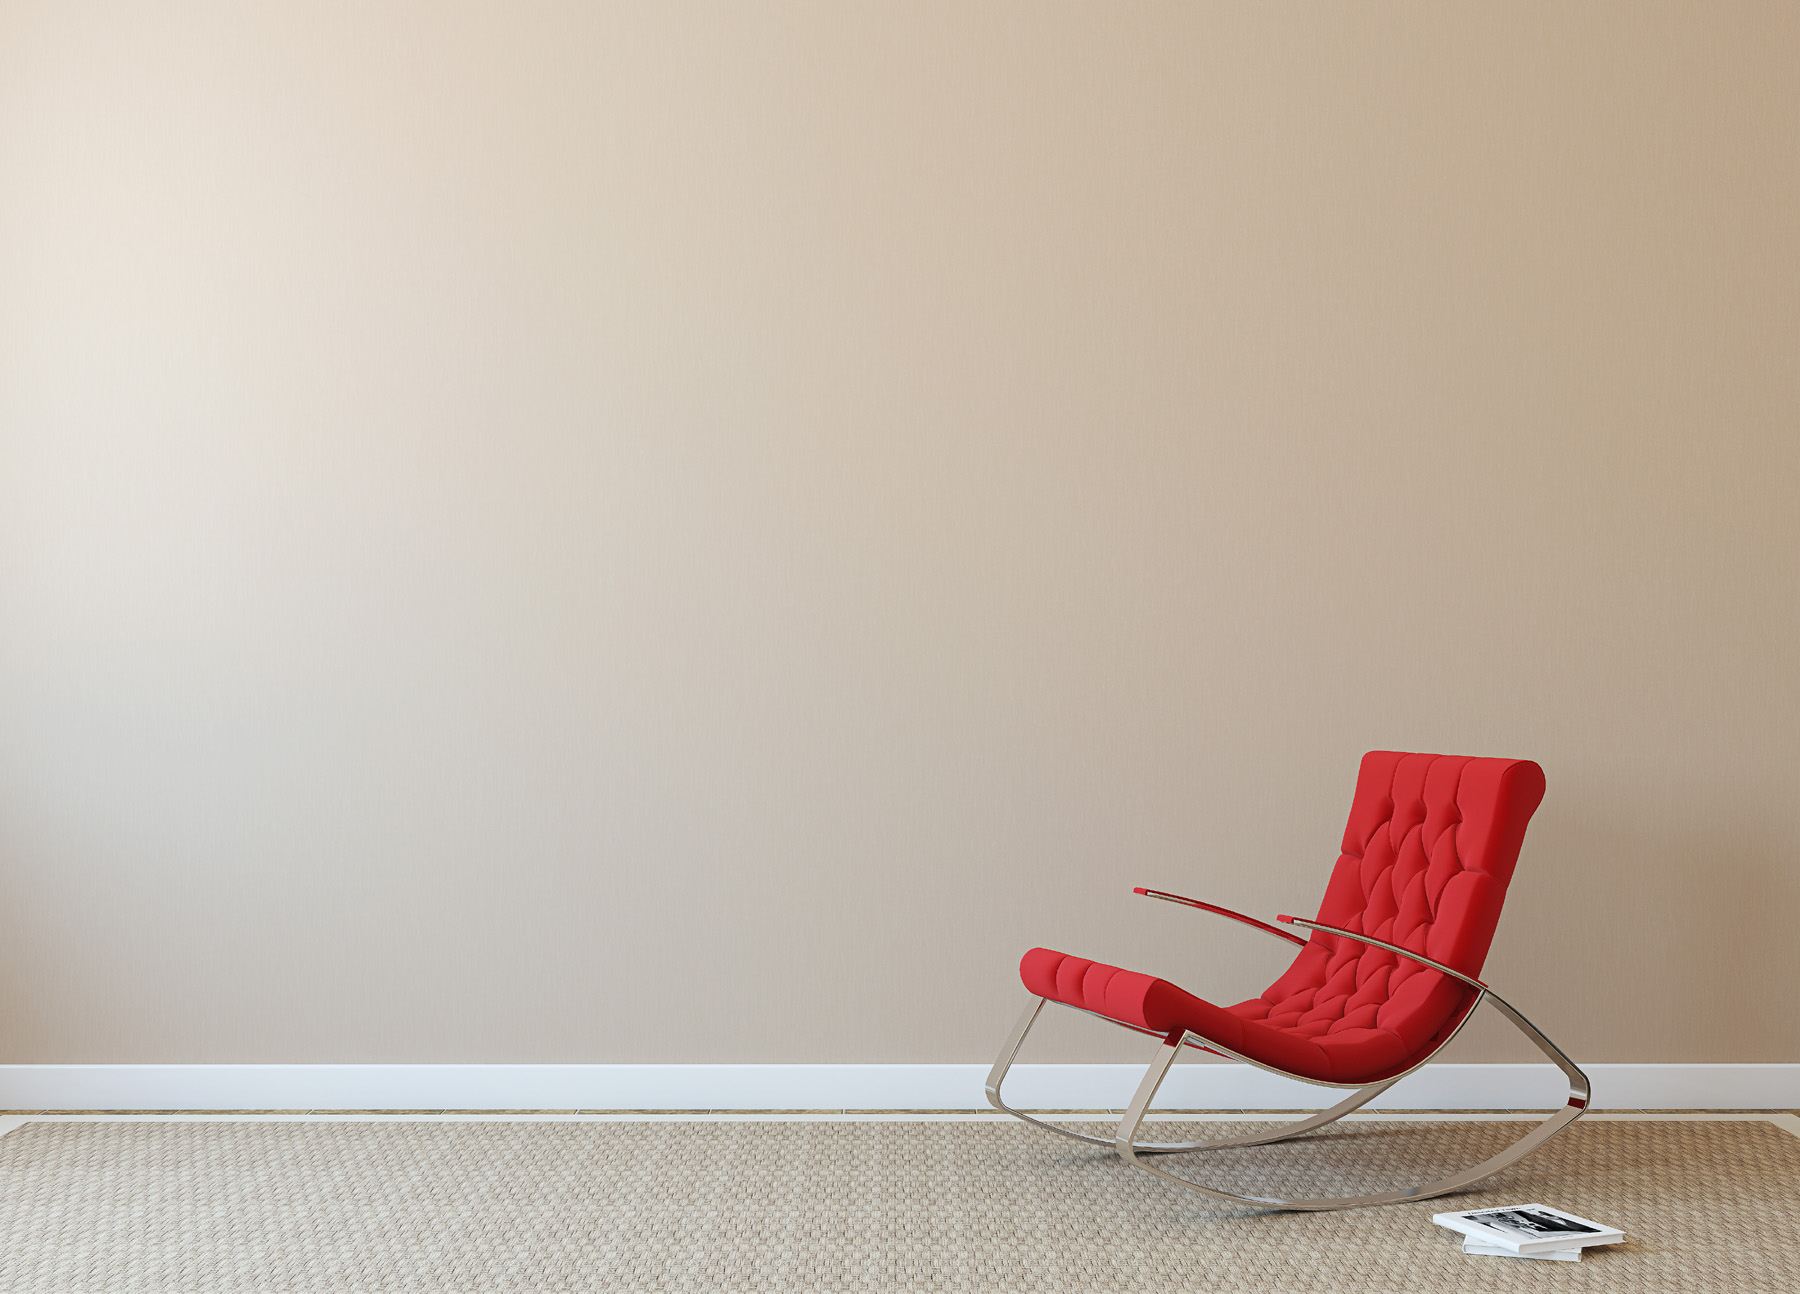 Room red sofa and rocking chair 51943